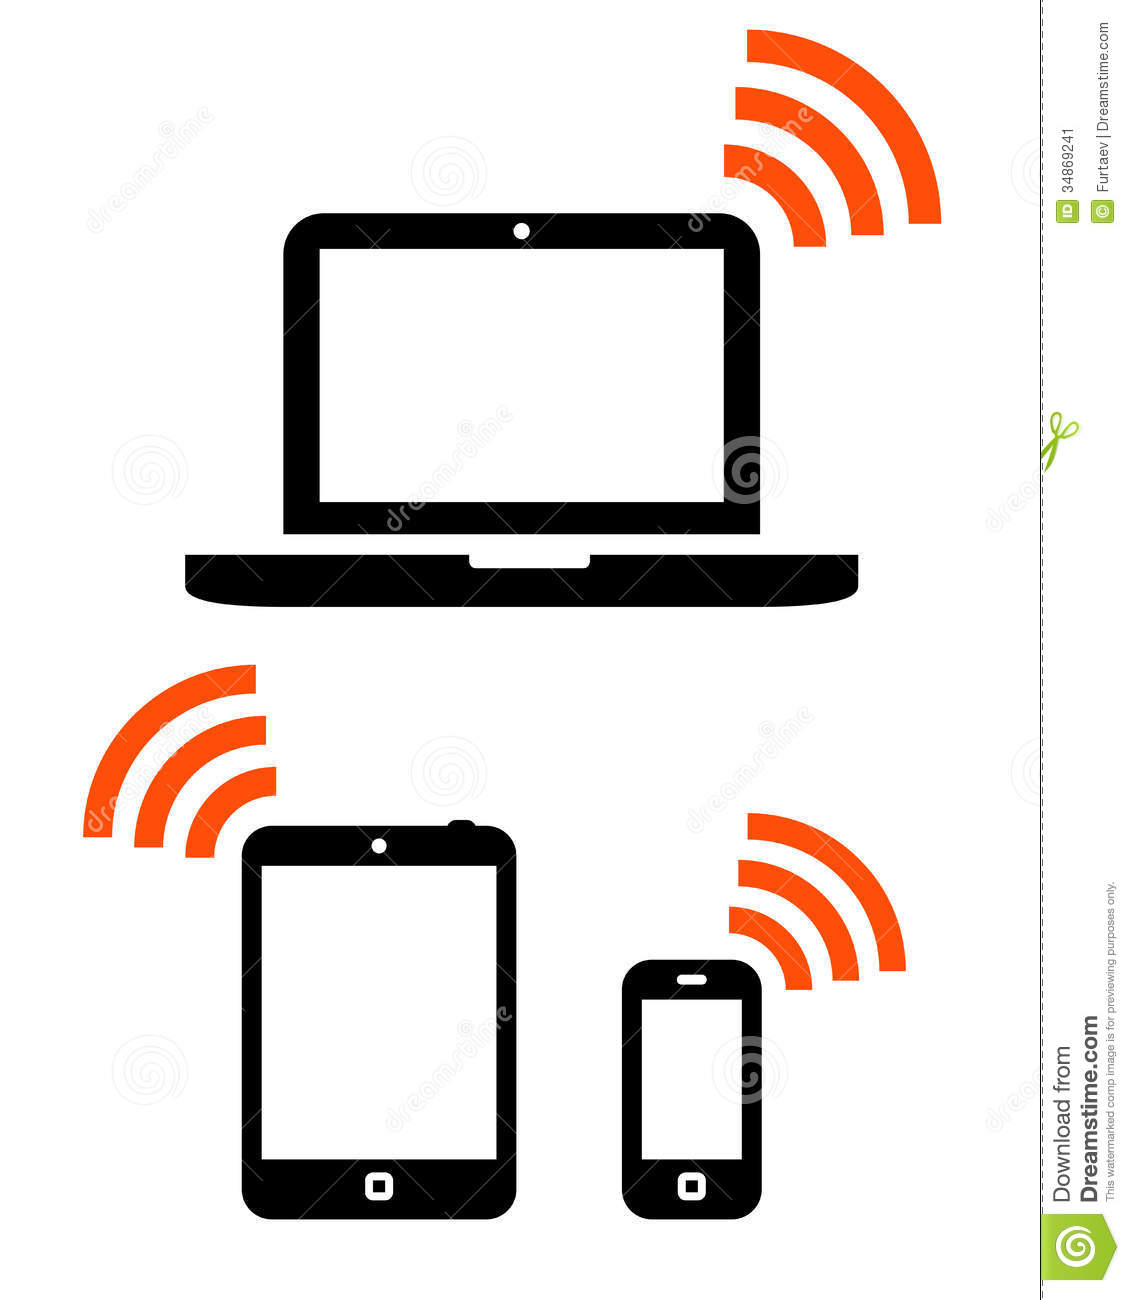 15 Phone Computer Icon Images